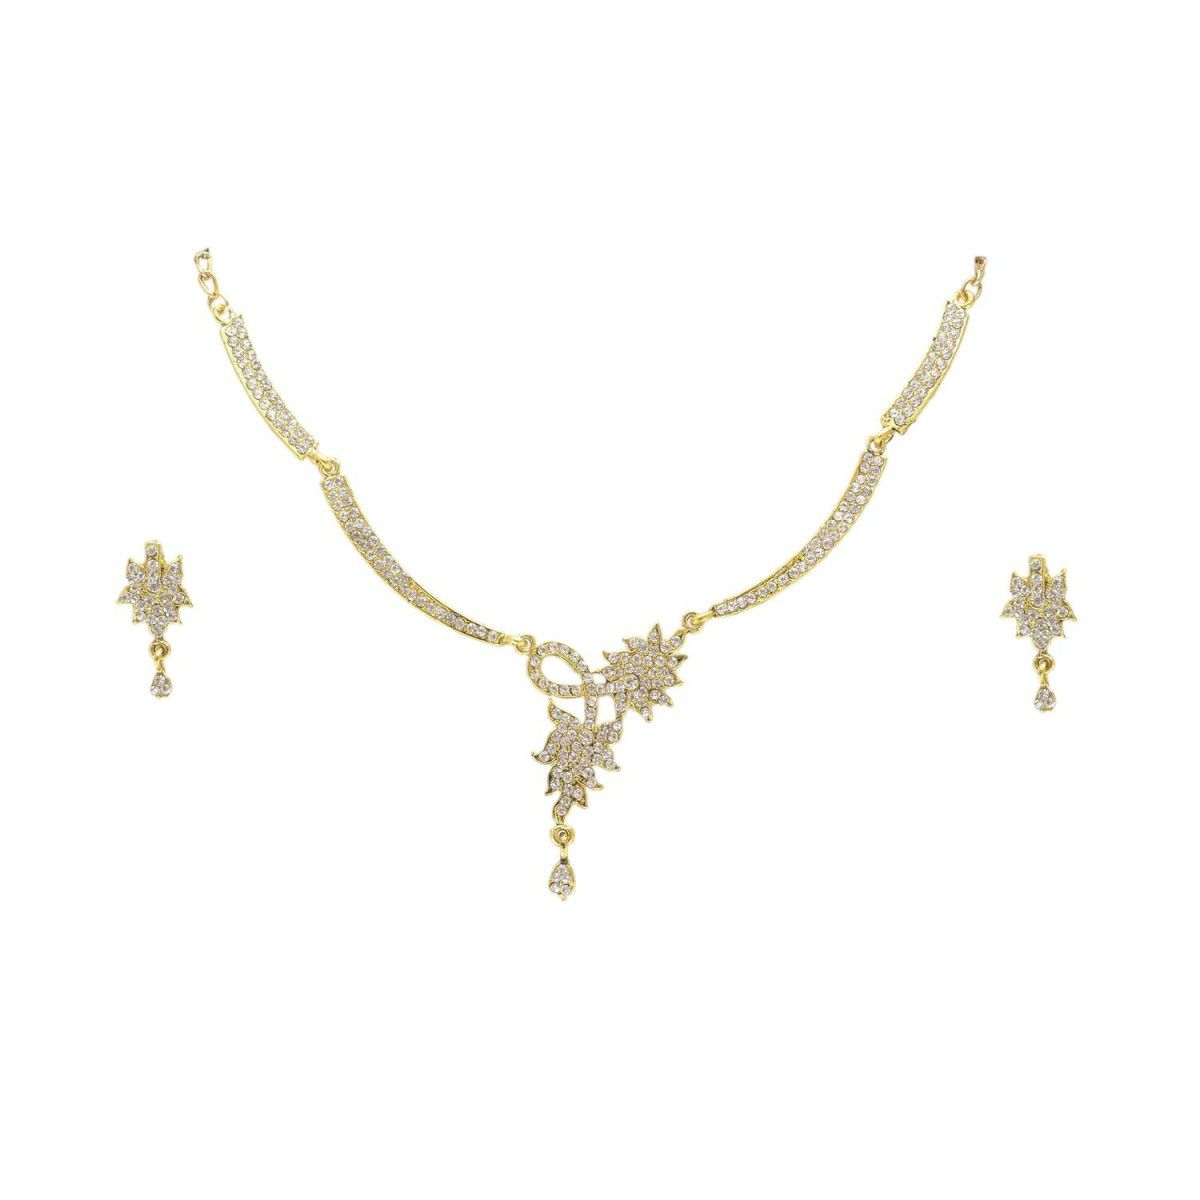 Gold Plated Cz/ad Designer Antique Jewellery Set Bridal Casual Party Wearu2026  sc 1 st  Pinterest & Gold Plated Cz/ad Designer Antique Jewellery Set Bridal Casual Party ...